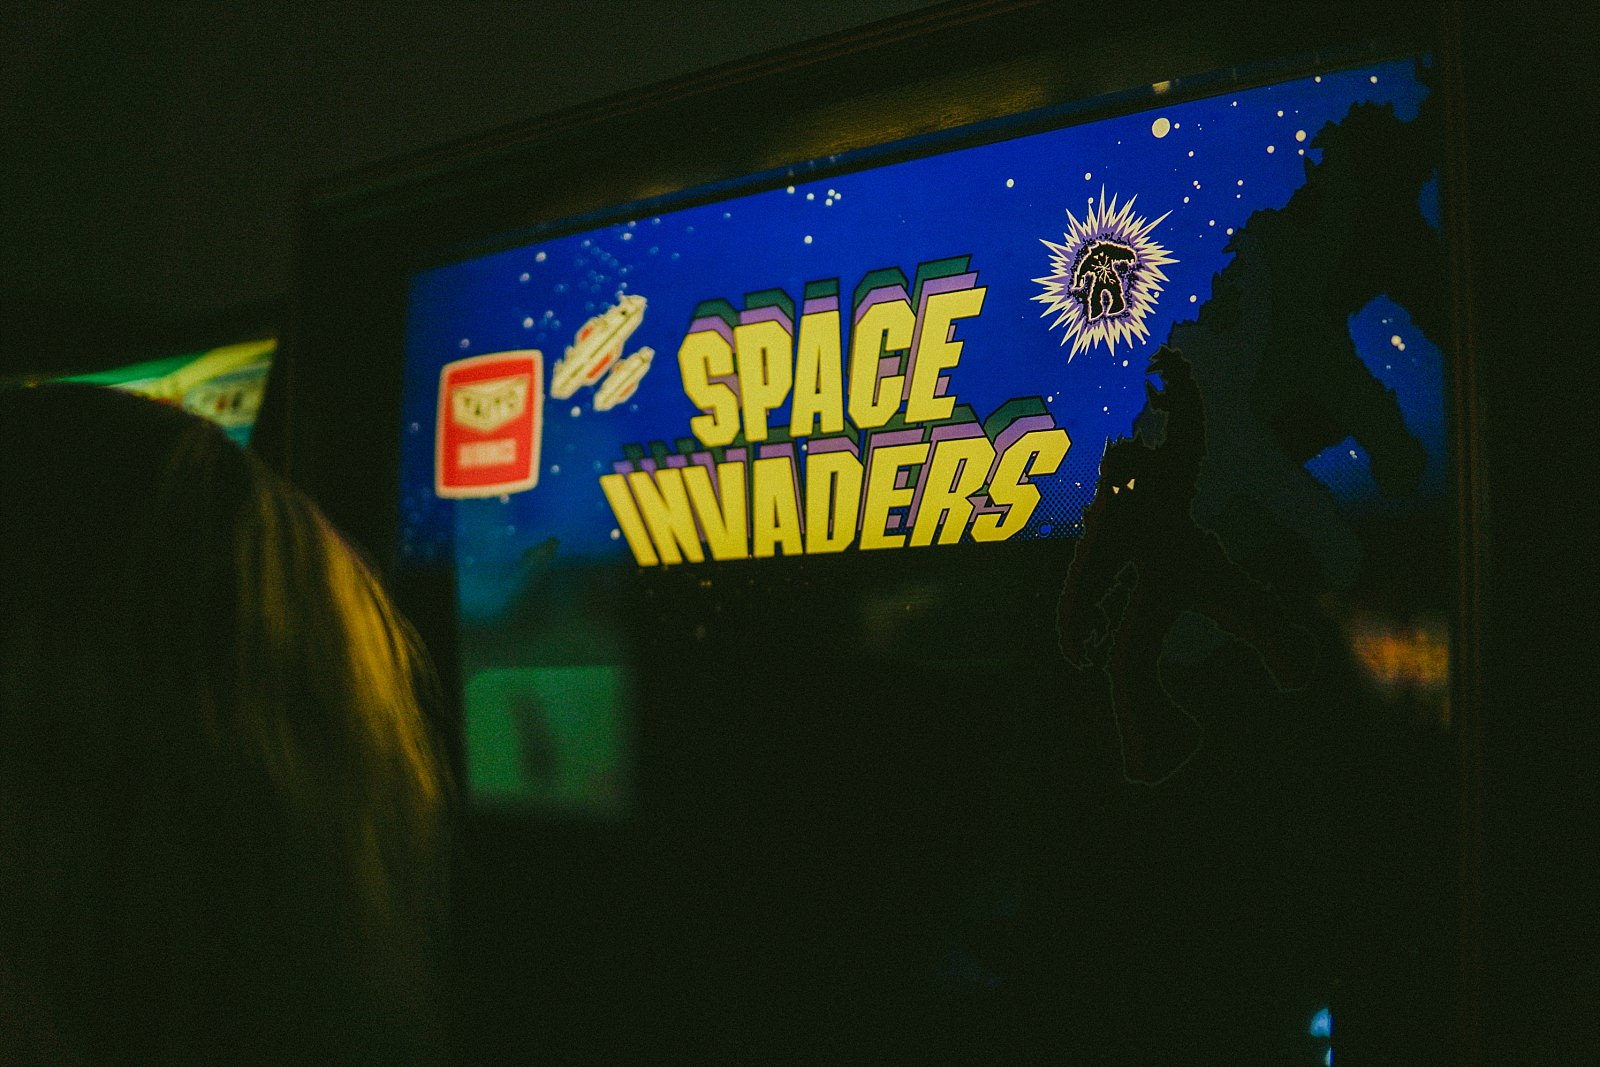 space invaders sign on arcade machine